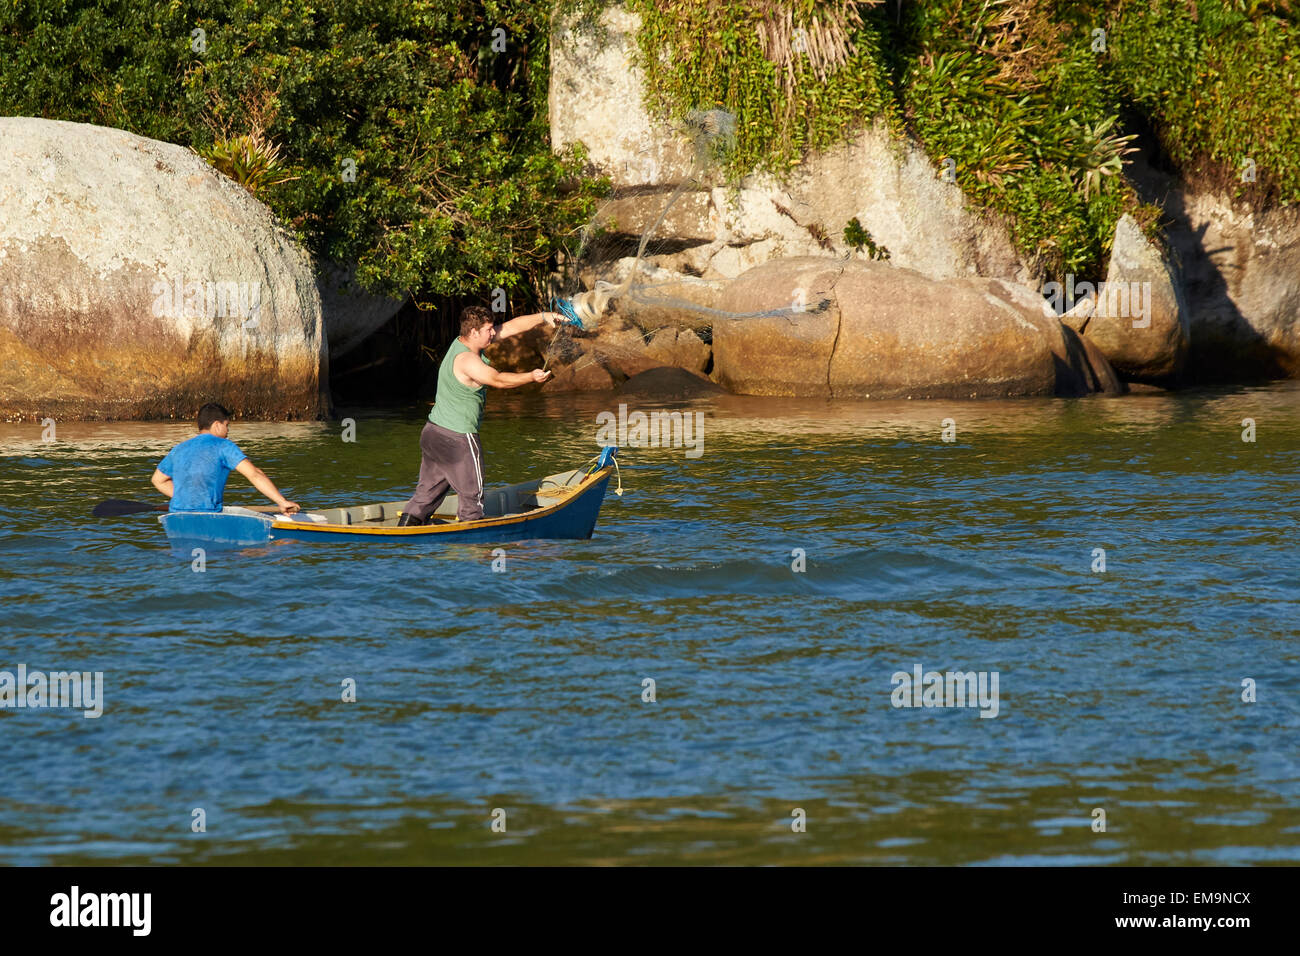 Fishing with a throw net - Stock Image